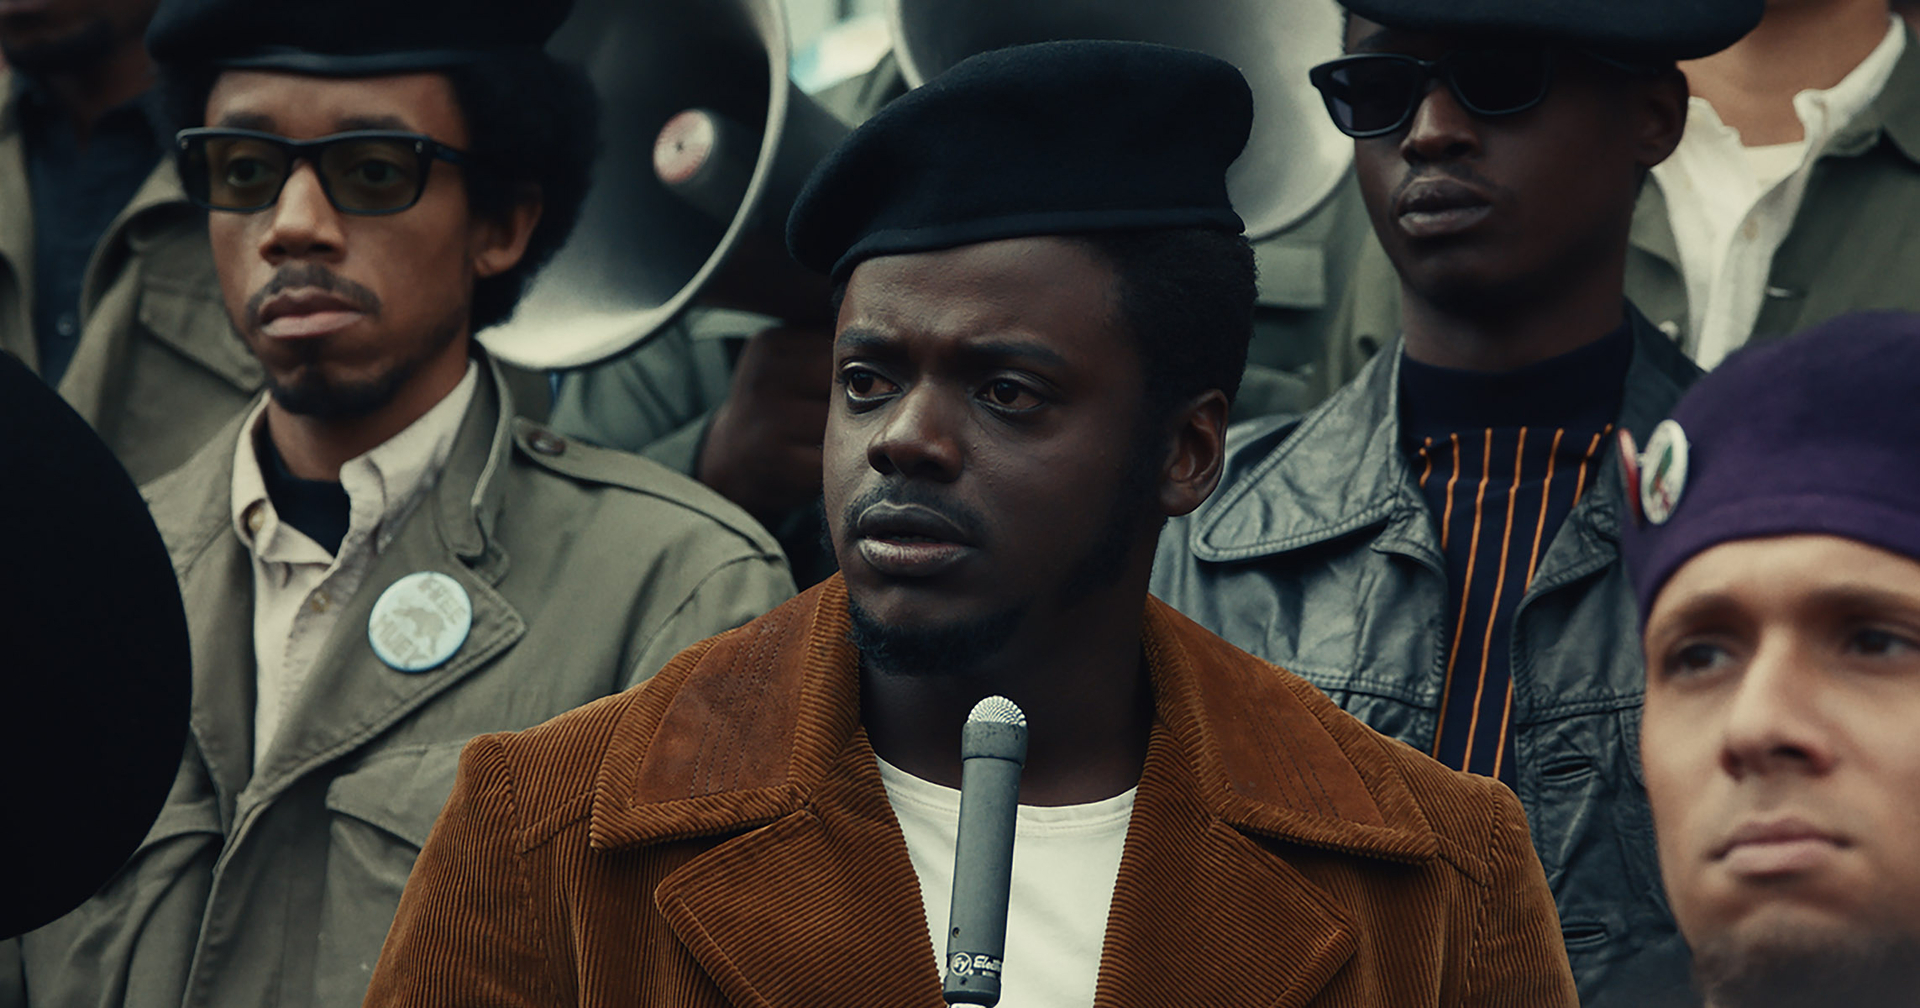 Daniel Kaluuya in a black beret in Judas and the Black Messiah